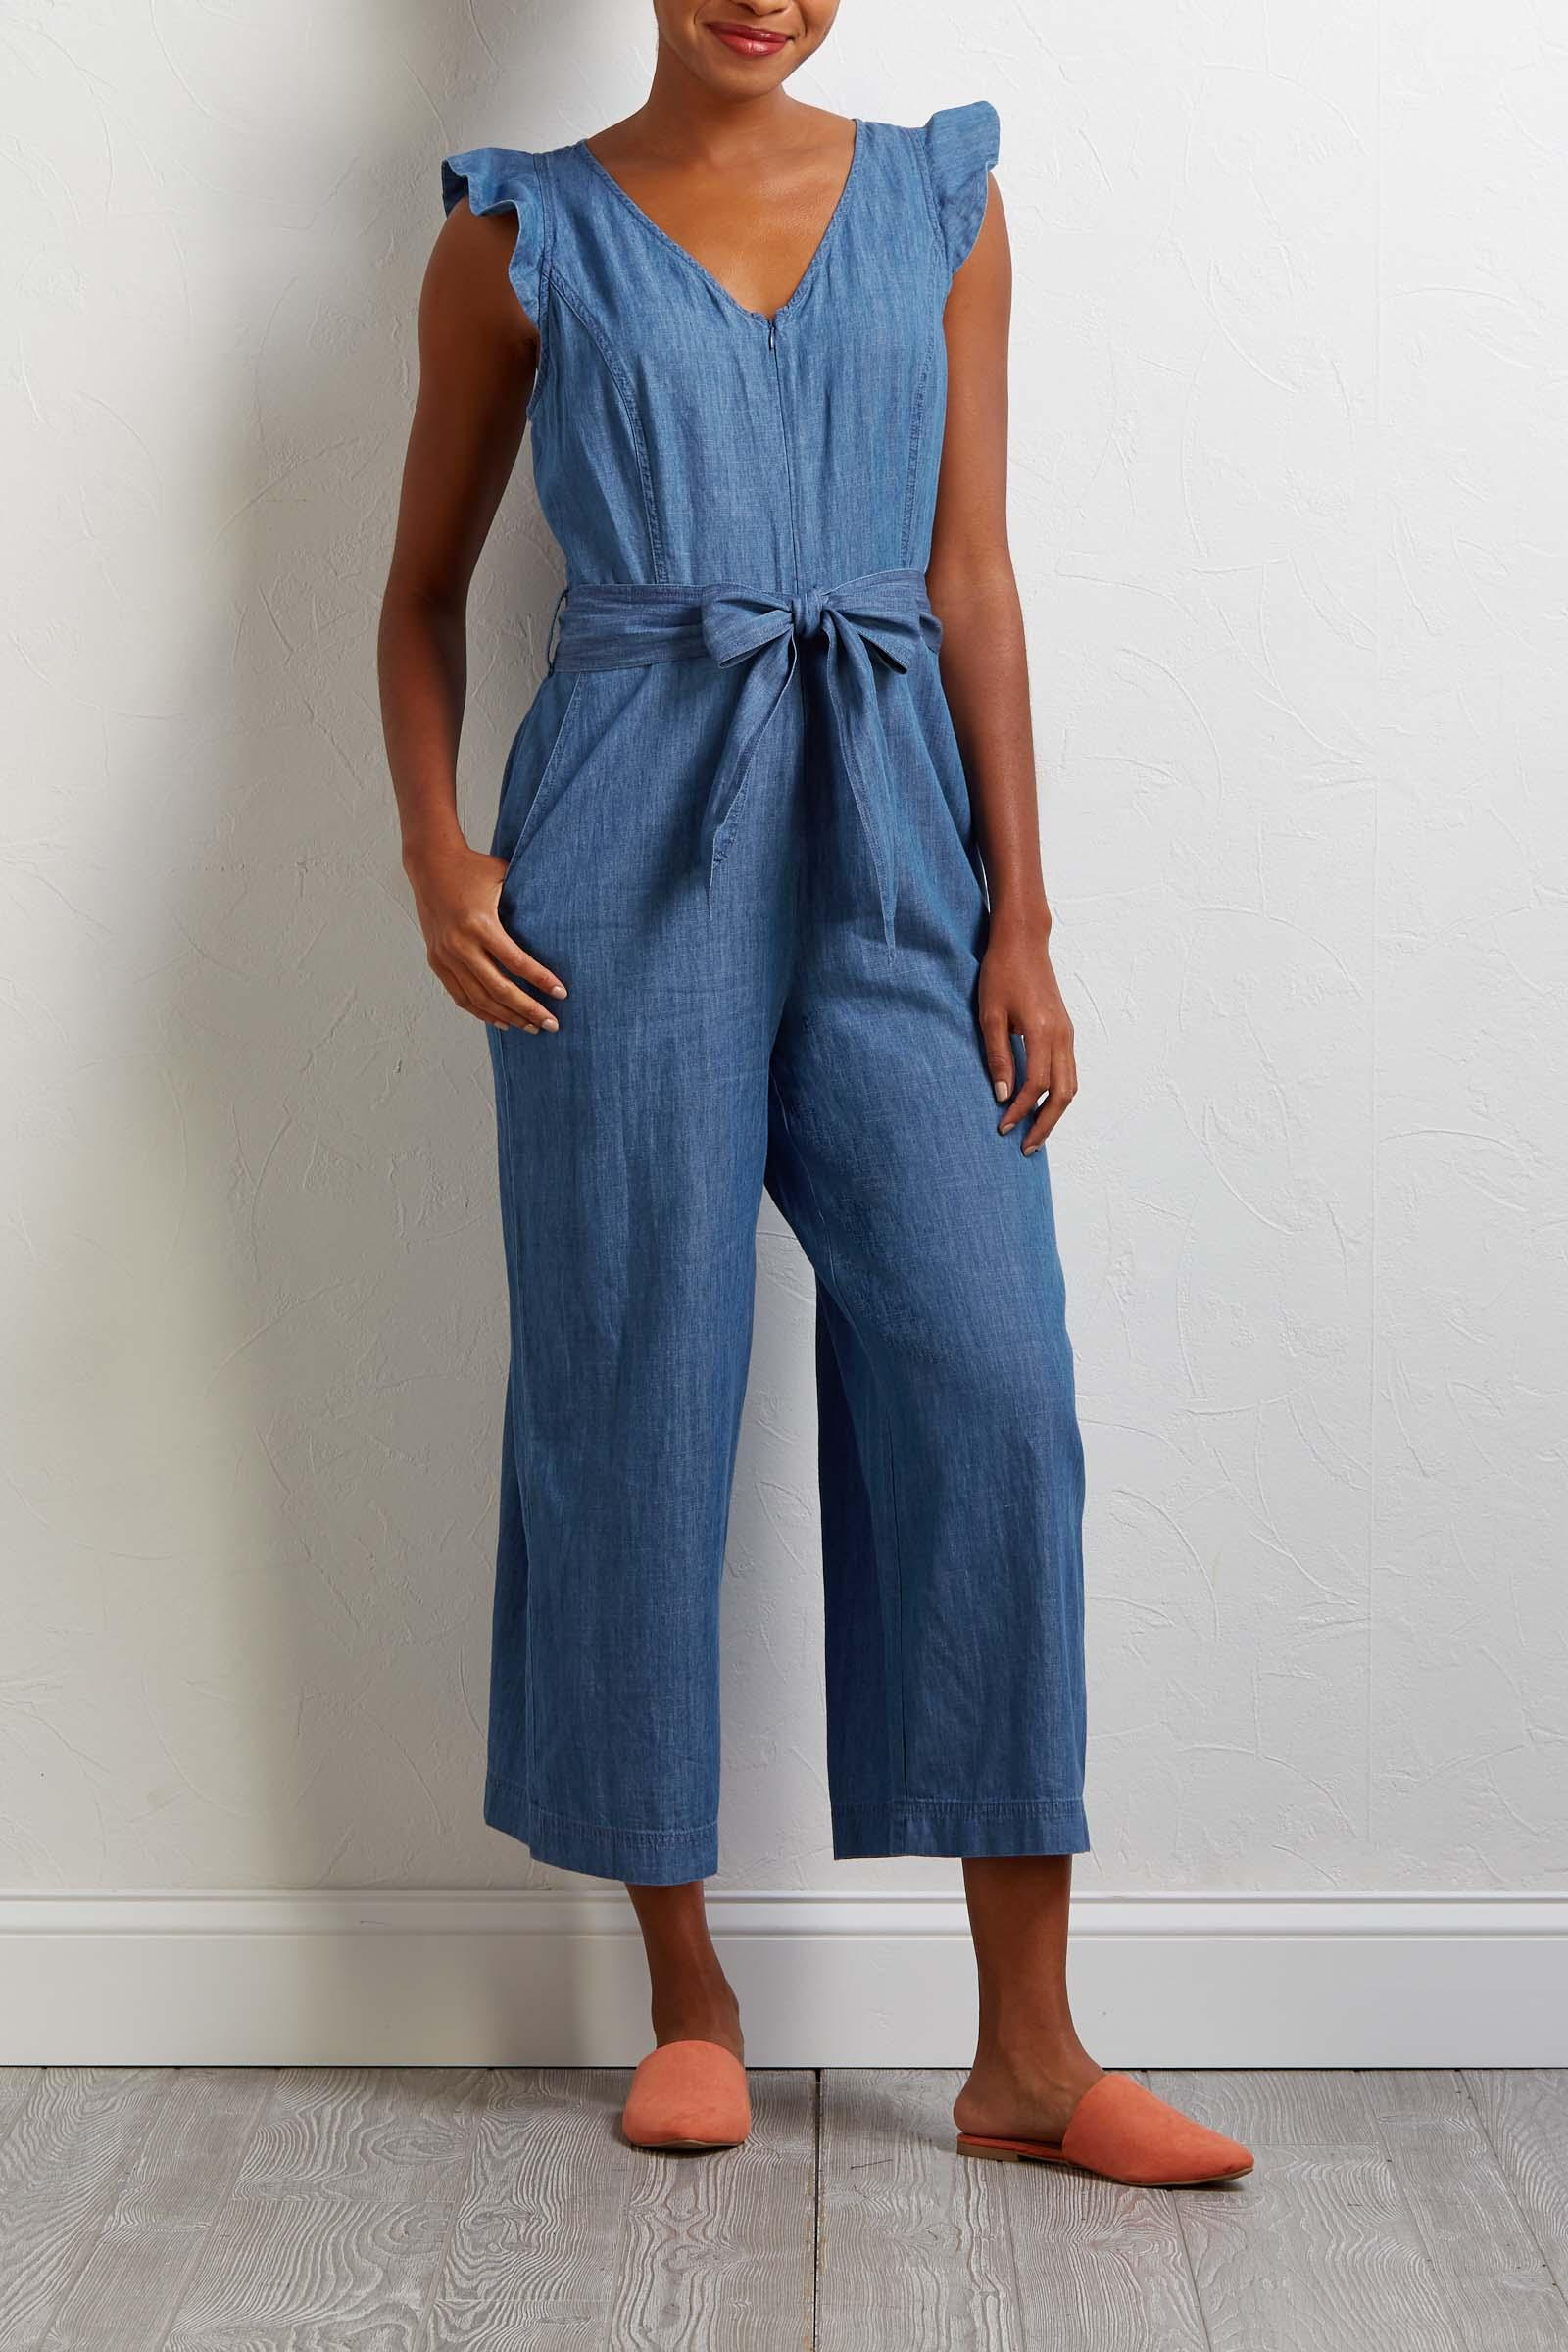 Jean- Ie From The Block Jumpsuit